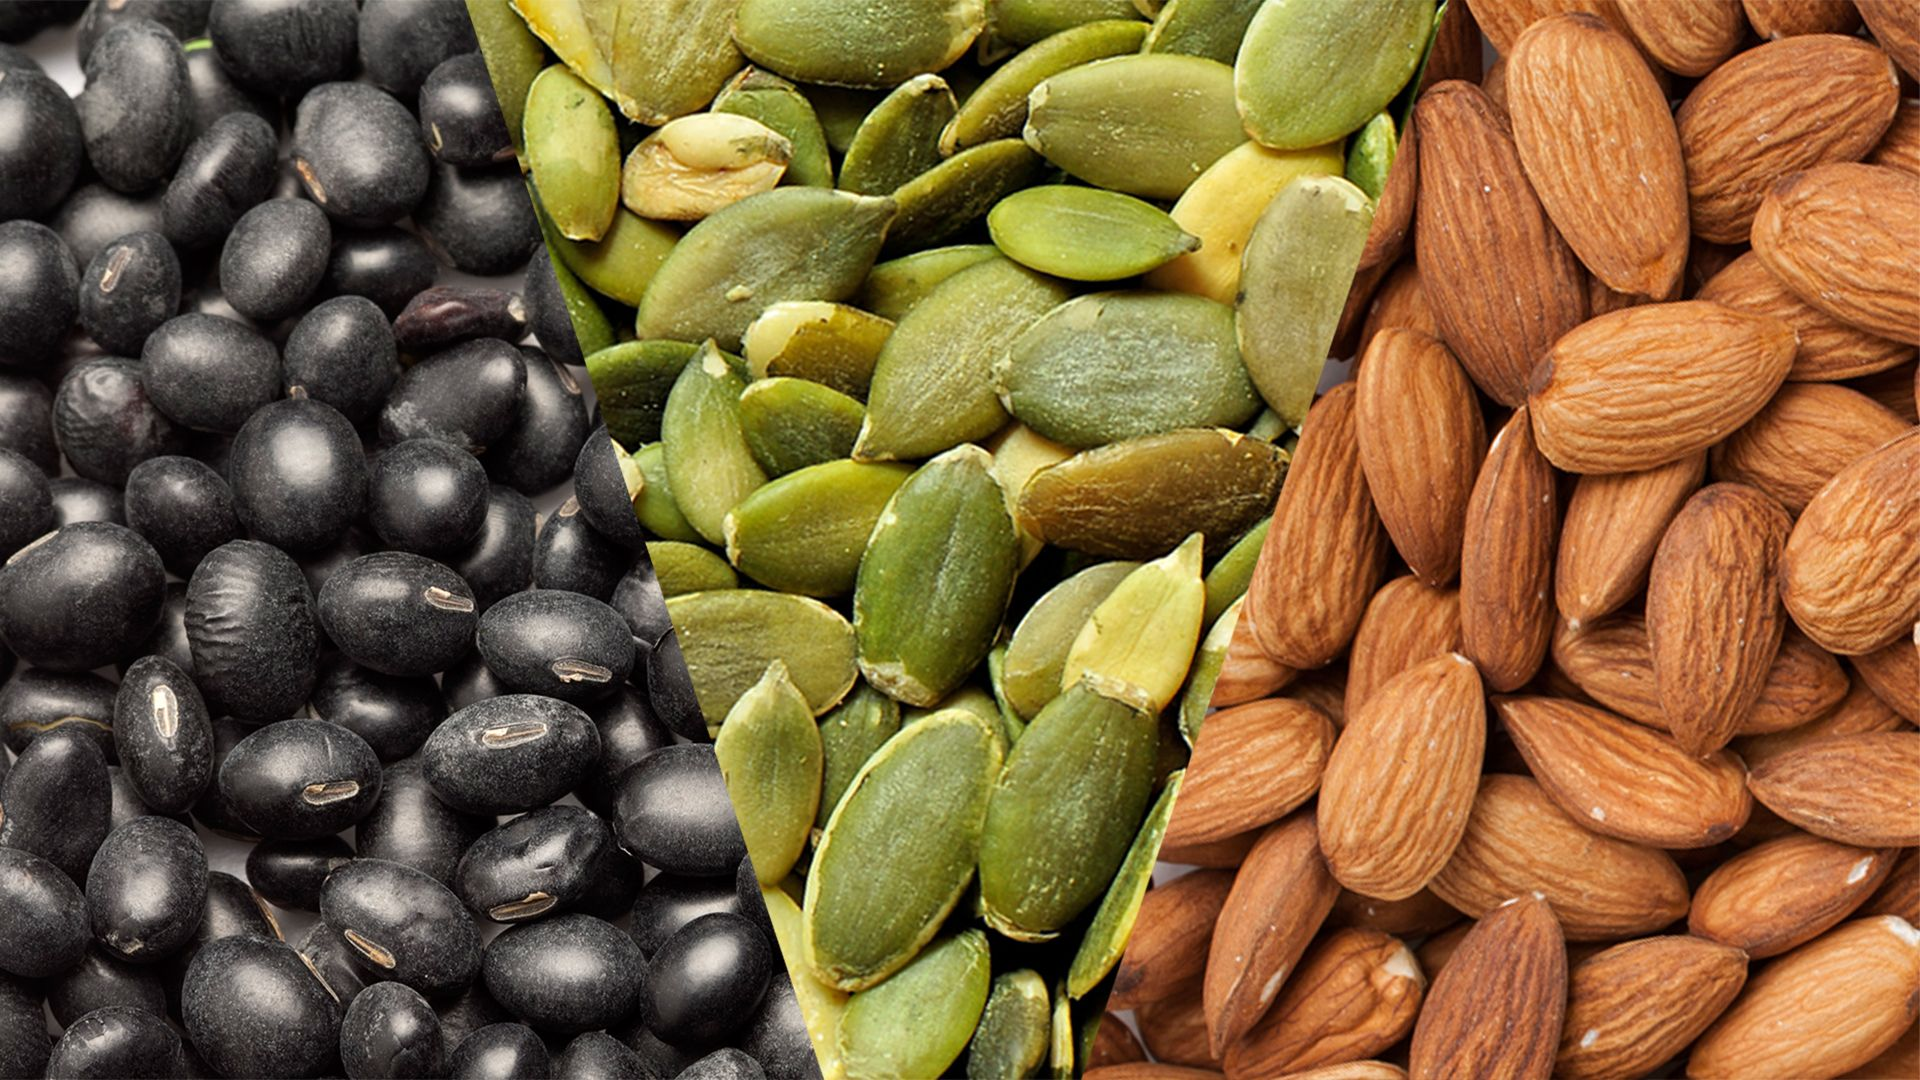 5 ways to add more protein to your diet (without adding meat)